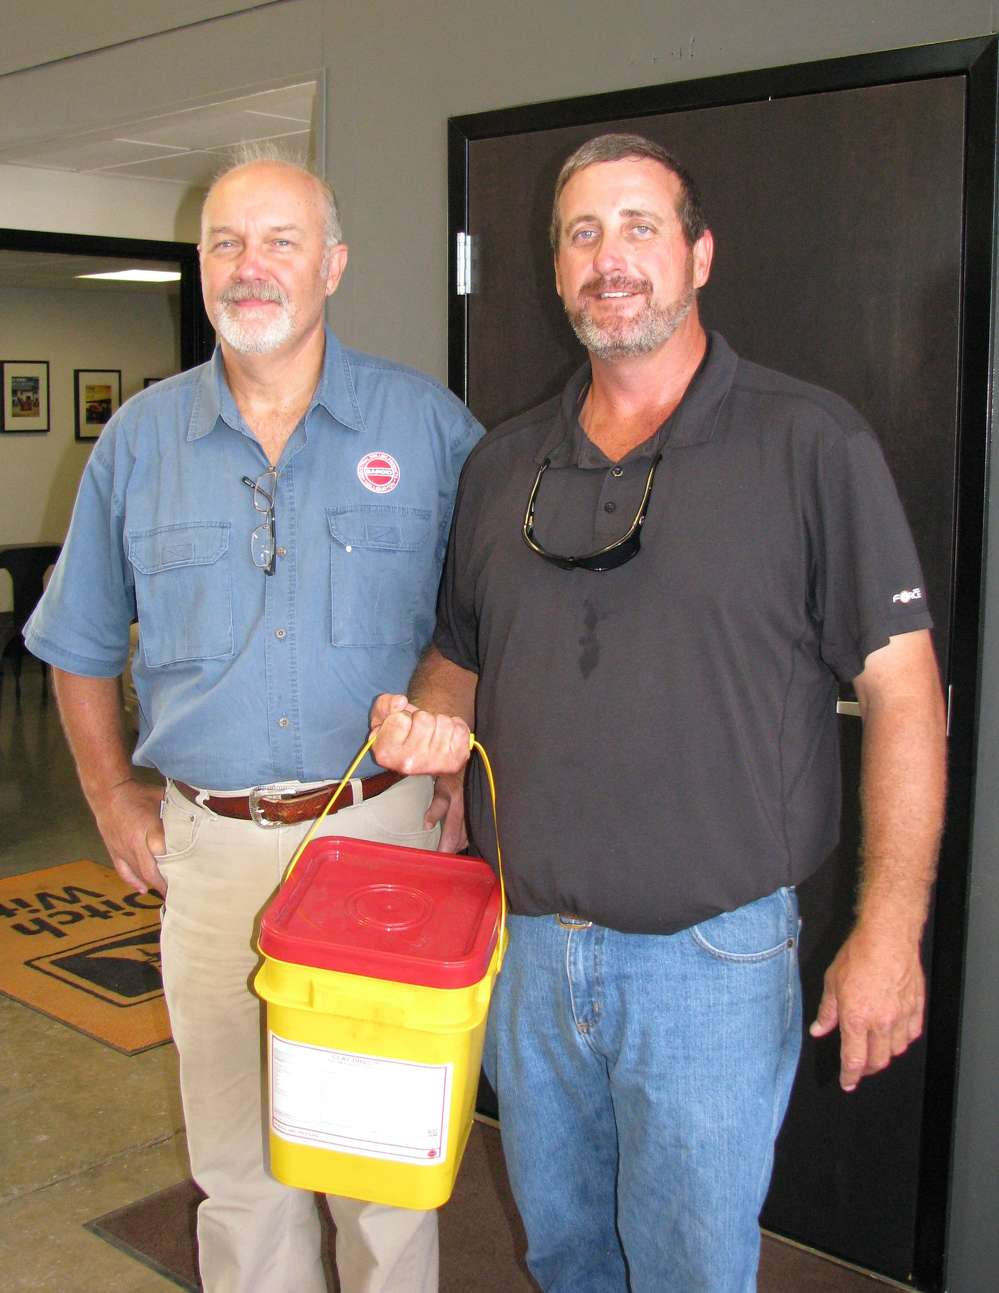 Mark Whittle (L) of Baroid Industrial Drilling Products, Lexington, S.C., provides a sample bucket of Baroid Clay-Drill to his customer Larry Rodgers of HDD Inc., Tallassee, Ala.